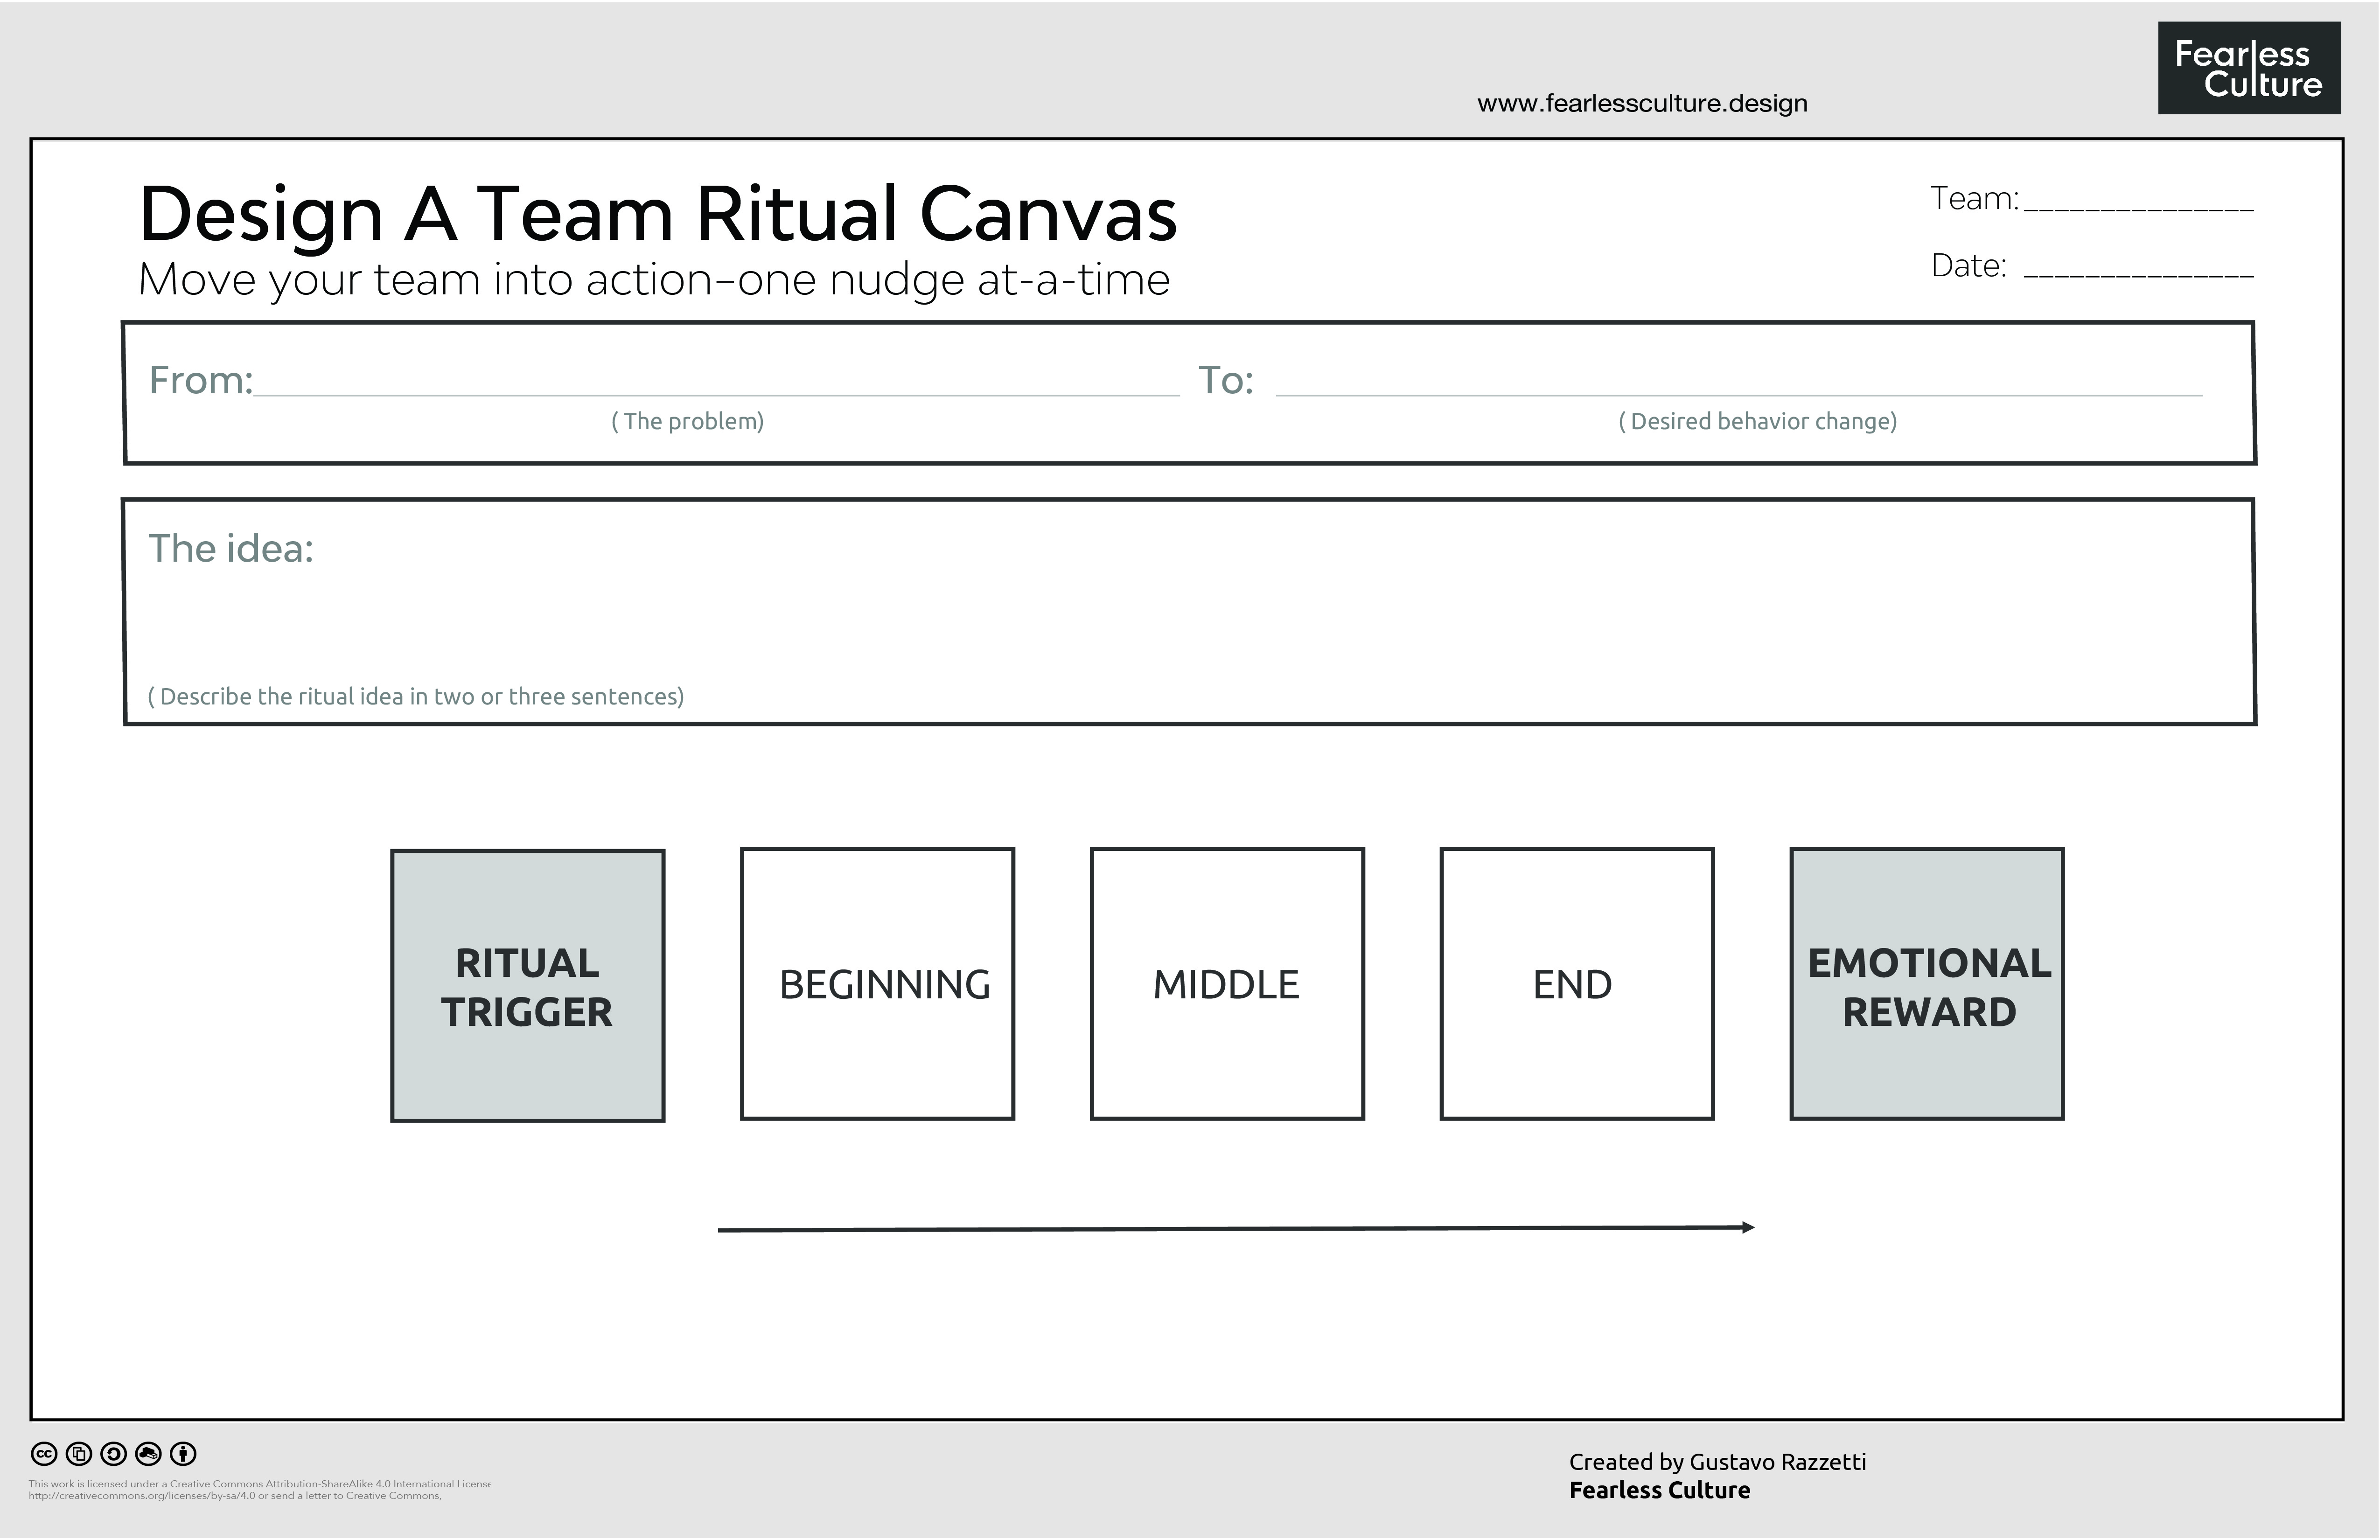 how to design a team ritual a canvas that capture the problem trigger and emotional reward of team rituals exercise